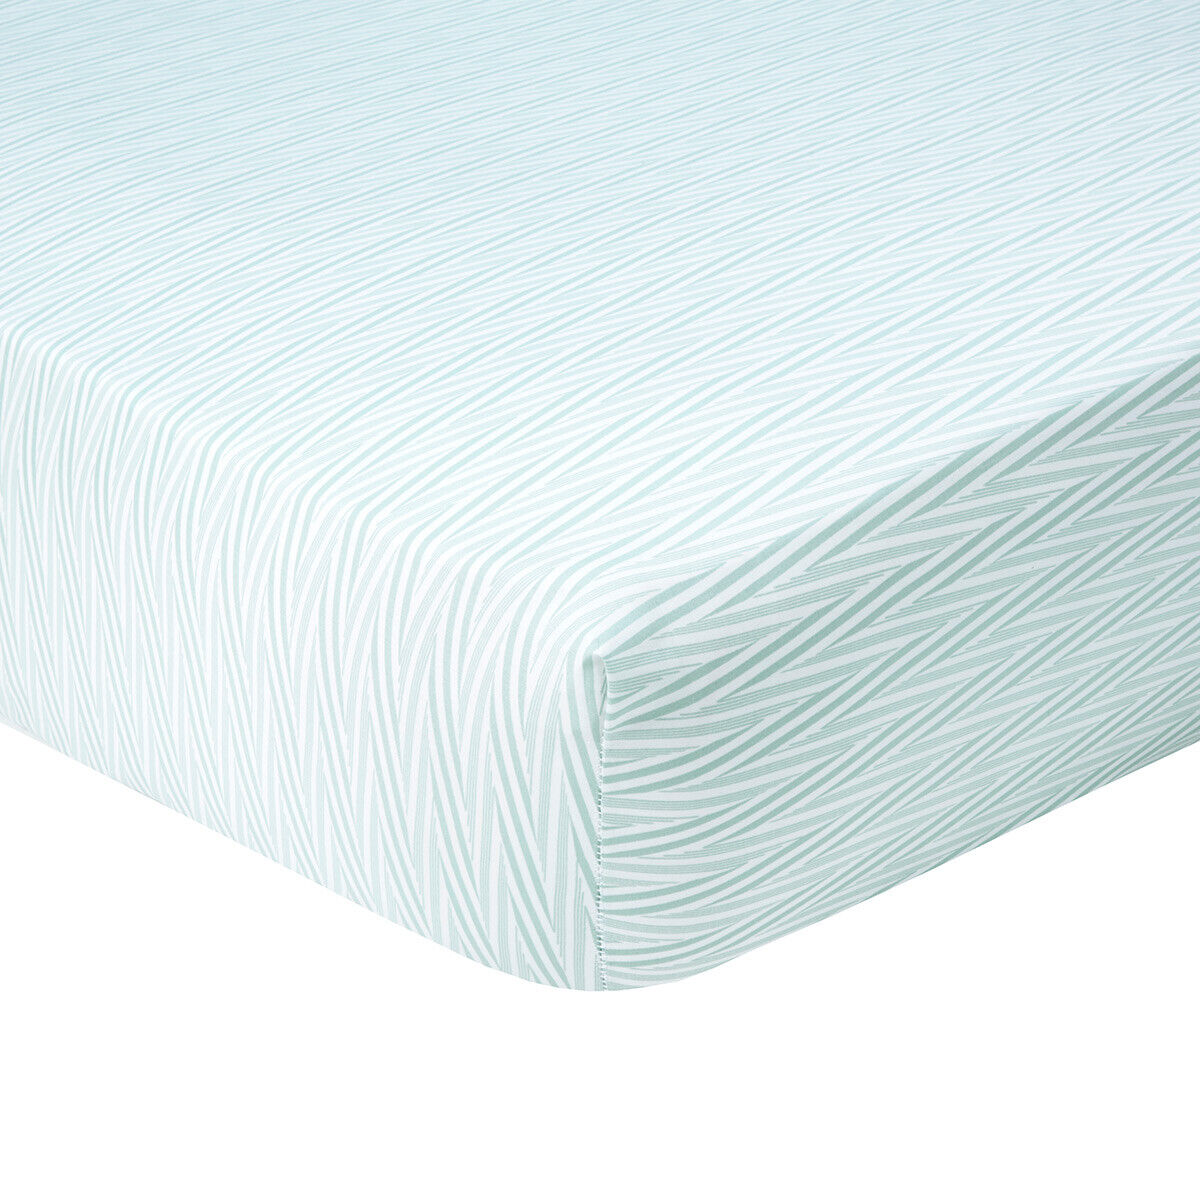 YVES DELORME = BOUQUETS FITTED SHEET 300TC EGYPTIAN COTTON 50% OFF